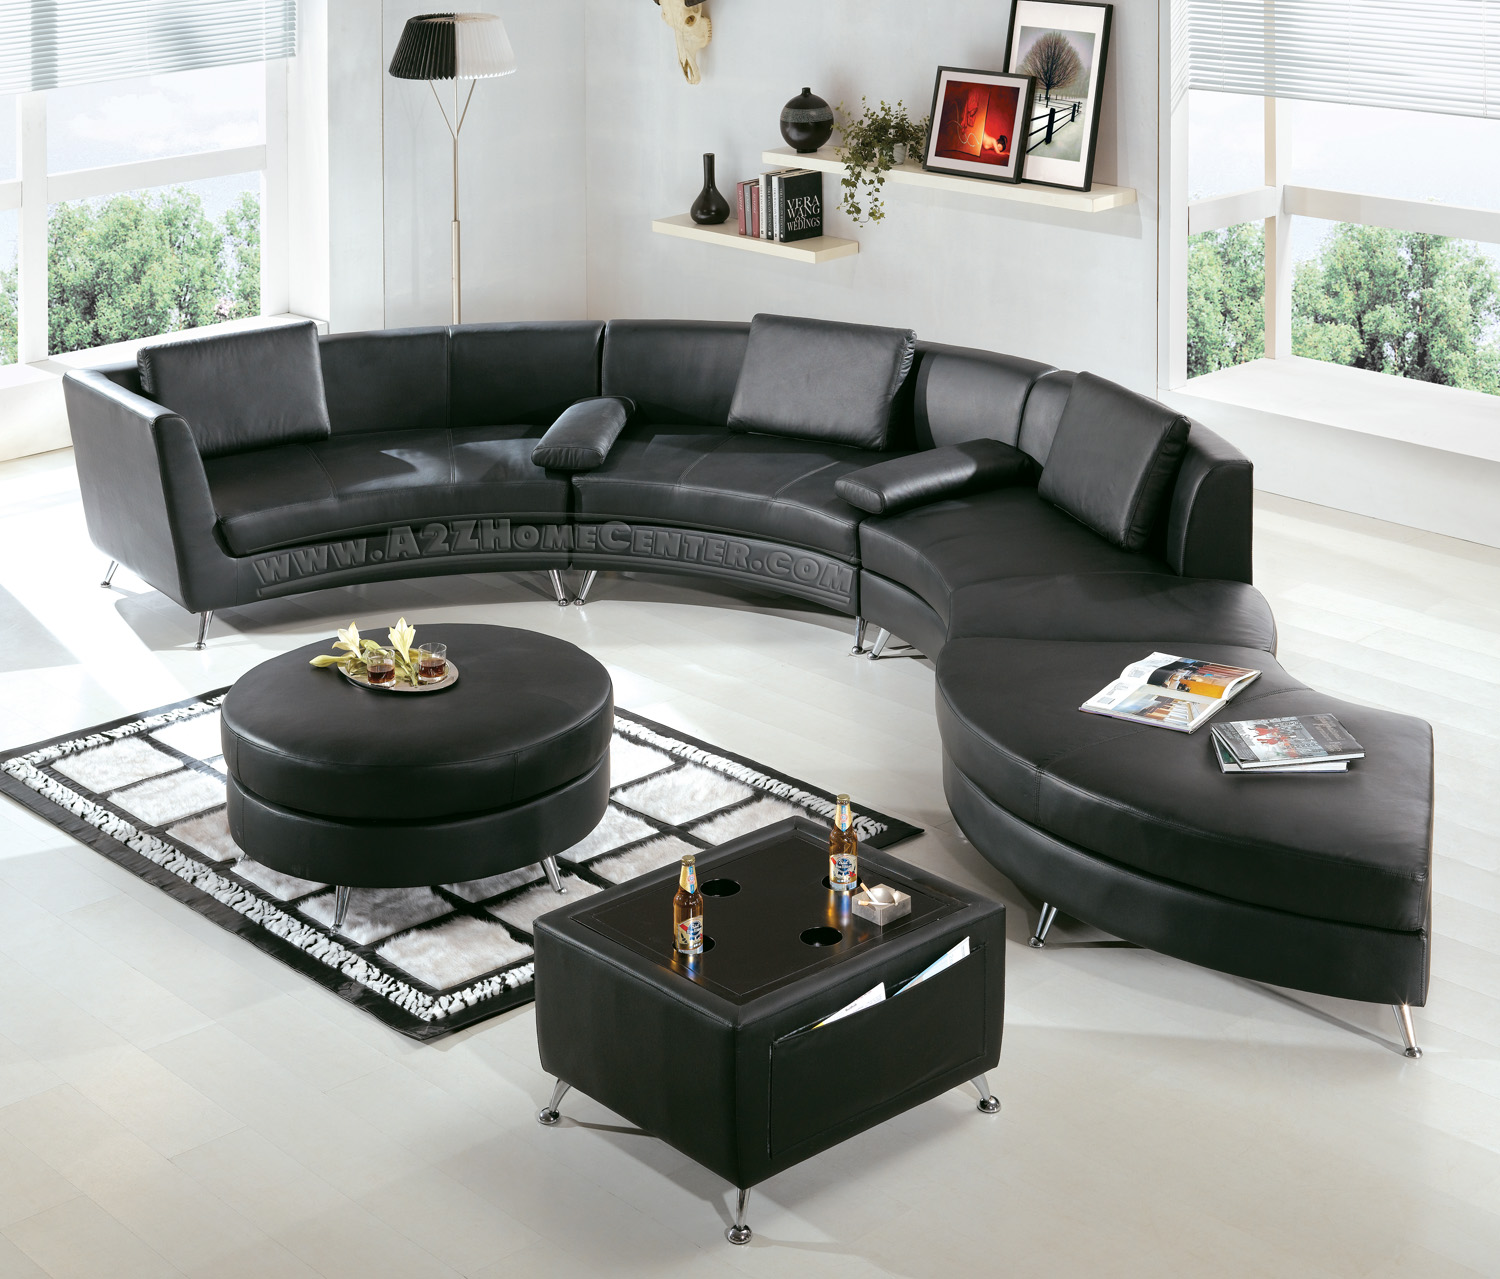 ... Beautiful And Affordable Modern Furniture For Your House : Cozy Affordable  Modern Furniture Black Color Sectional